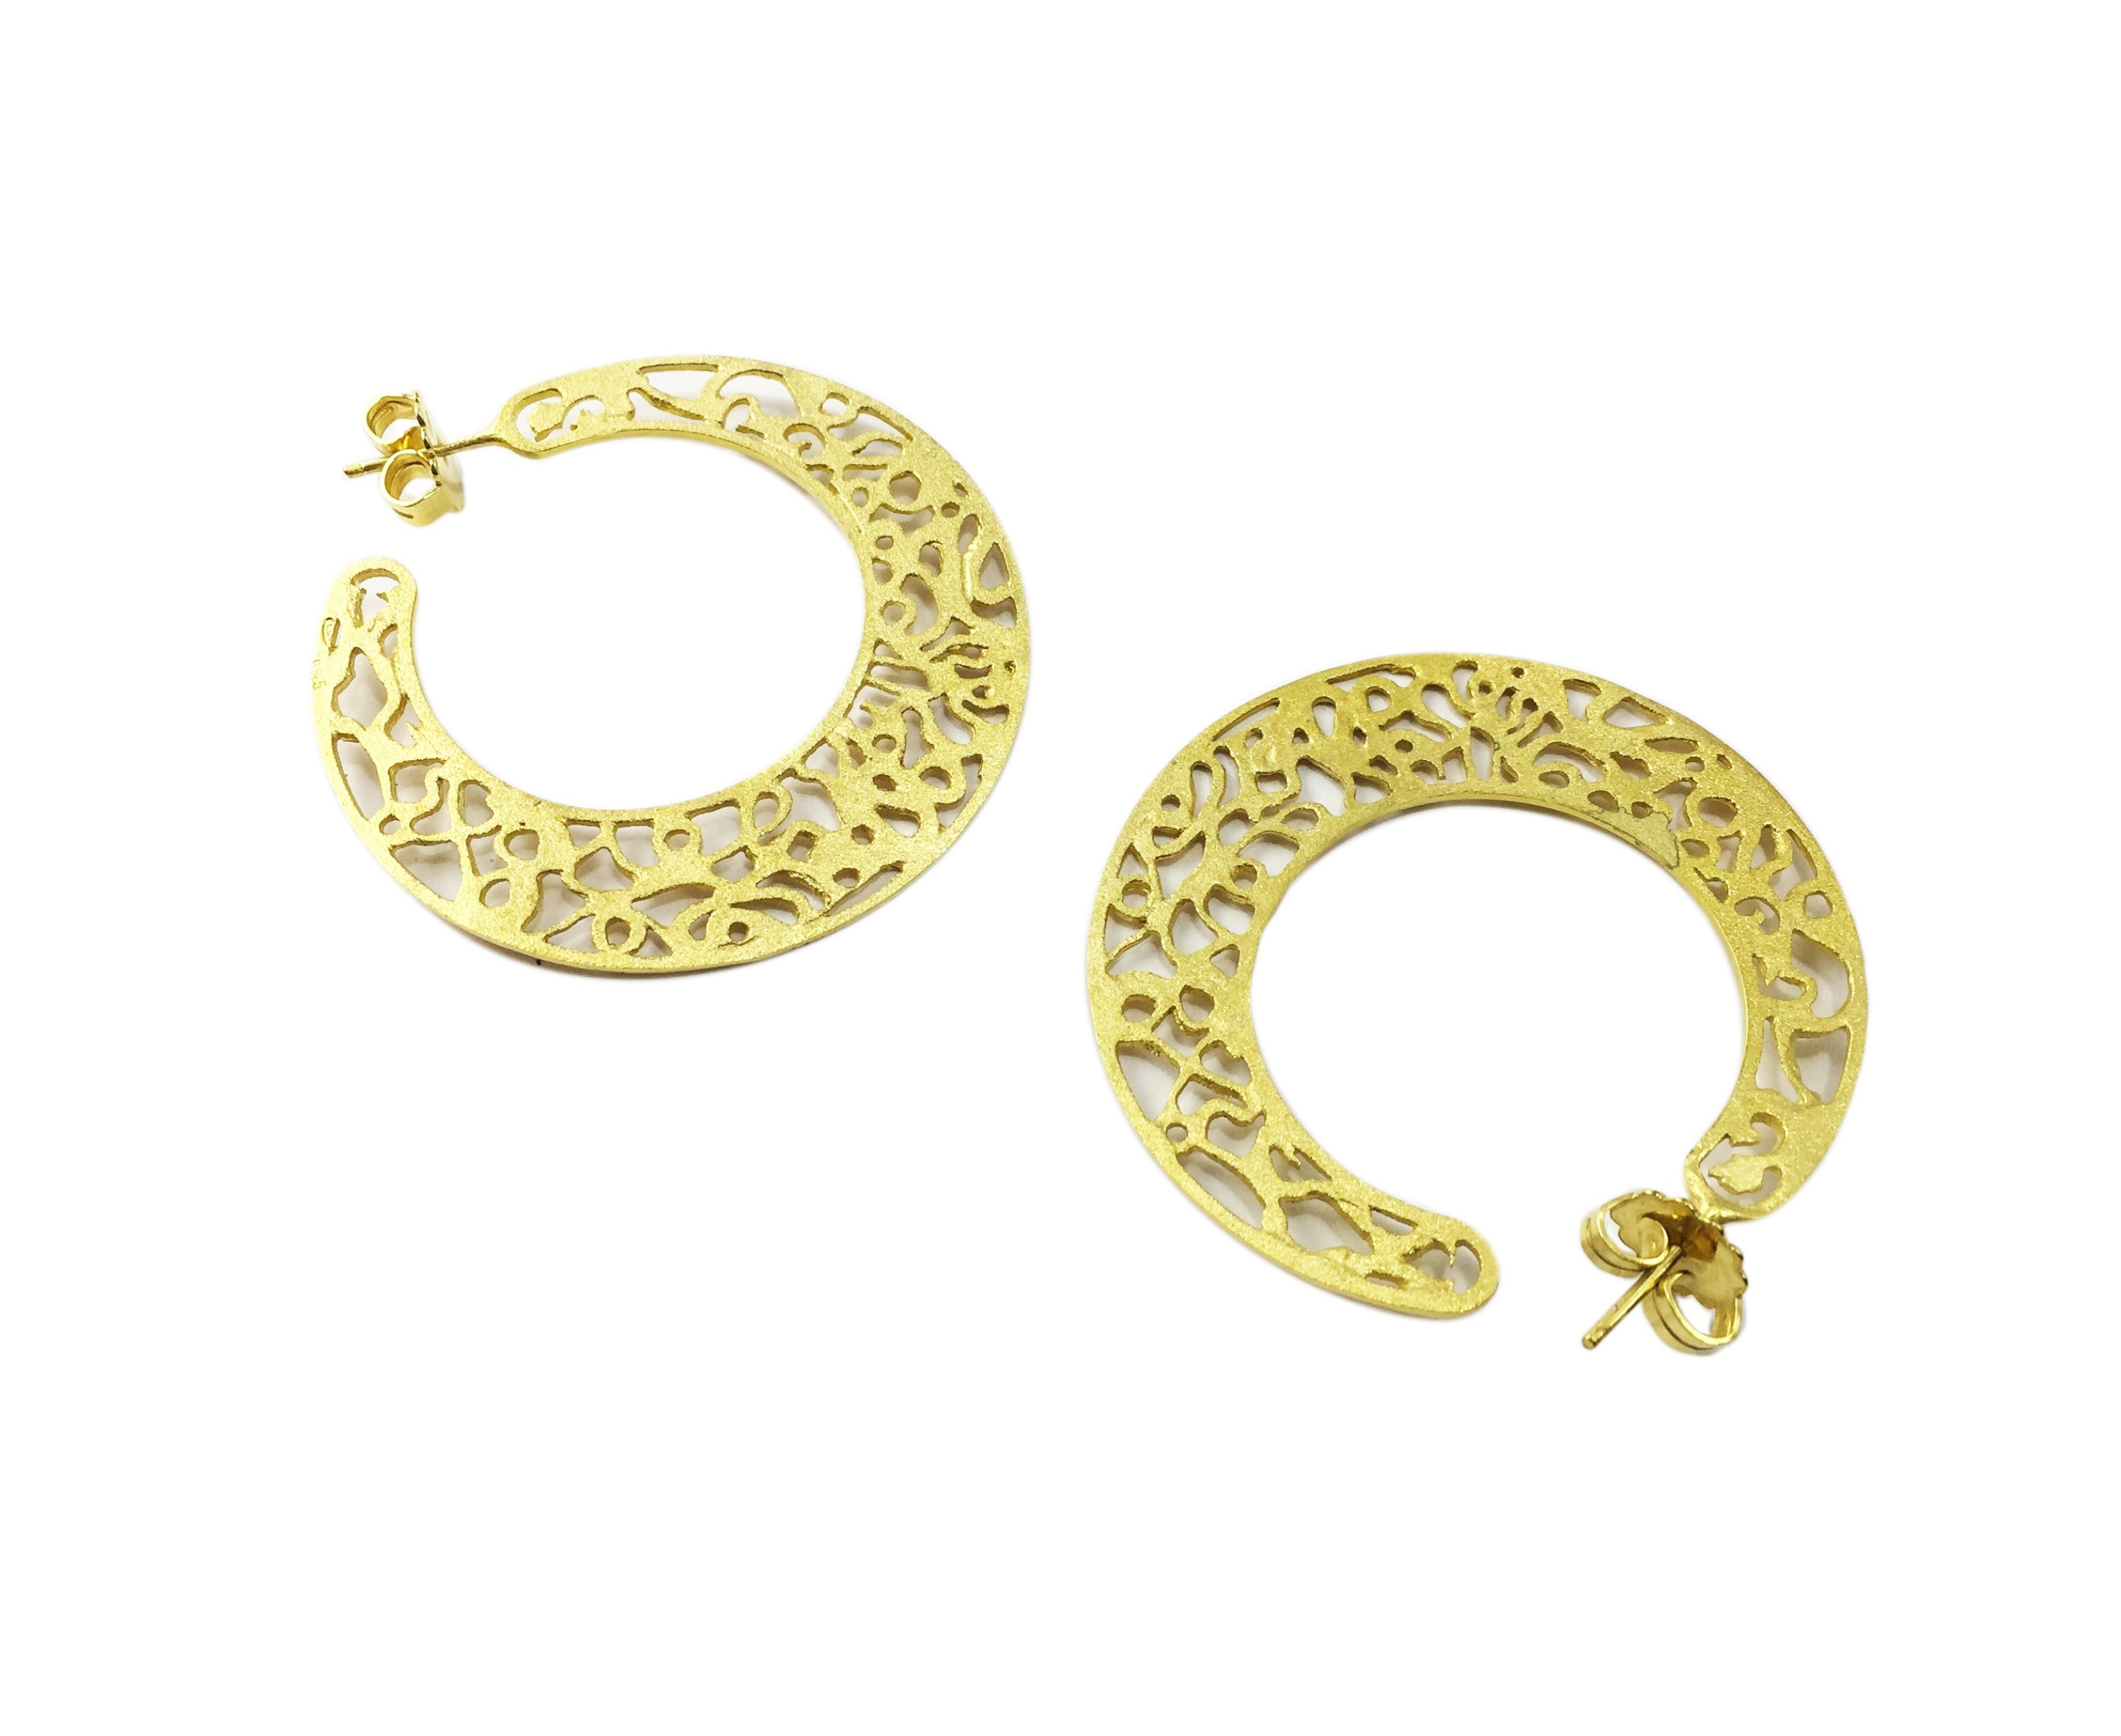 bonas oliver rara earrings jewellery plated round gold spinning stone